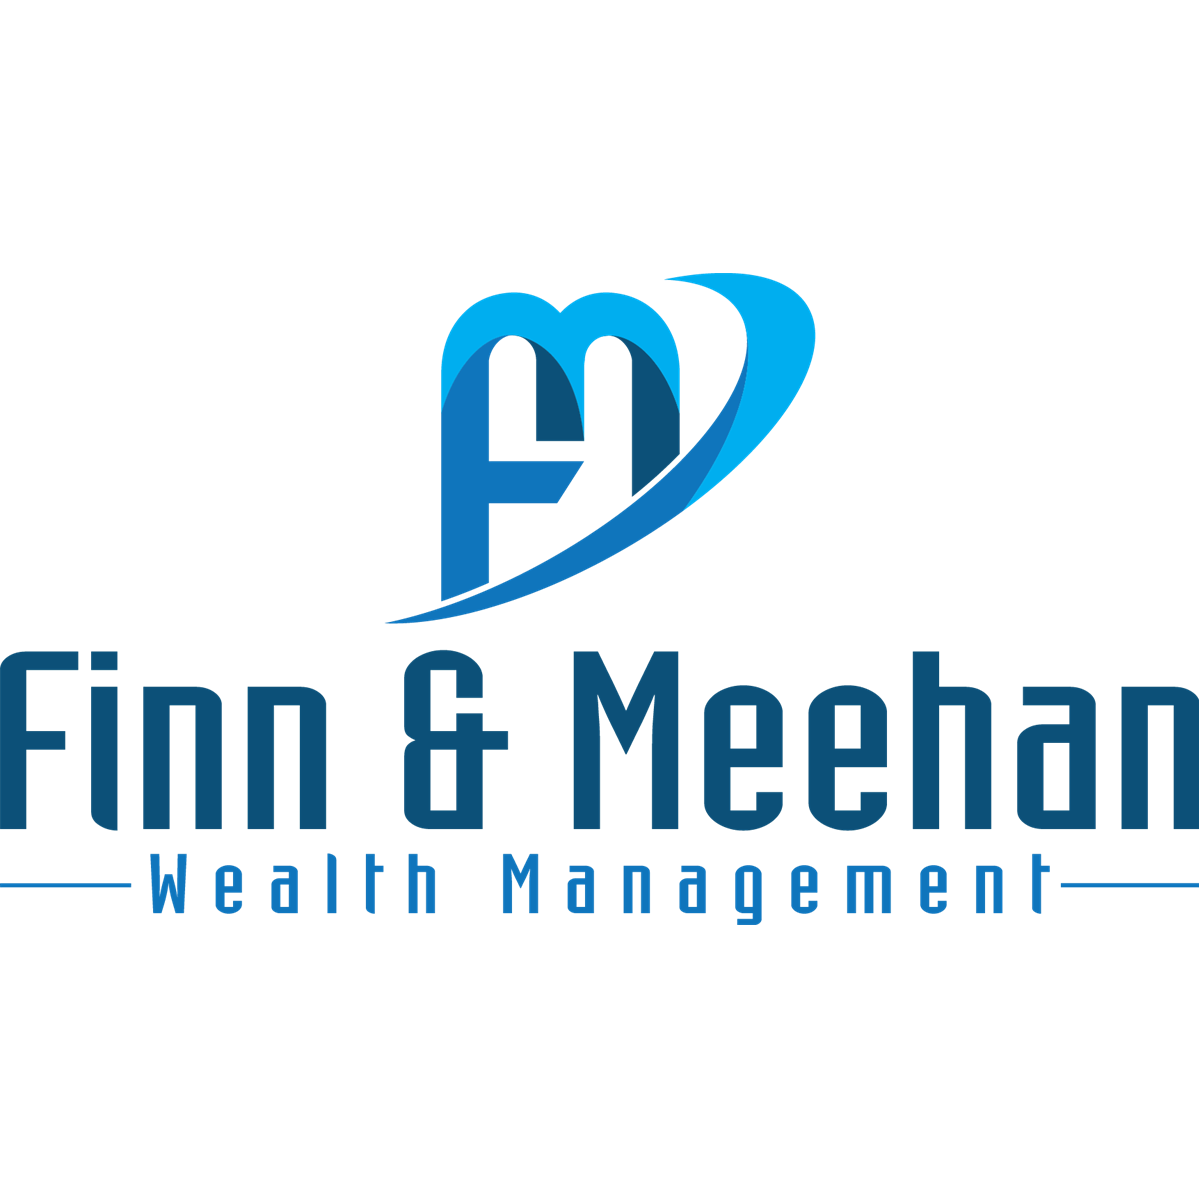 Finn & Meehan Wealth Management, LLC